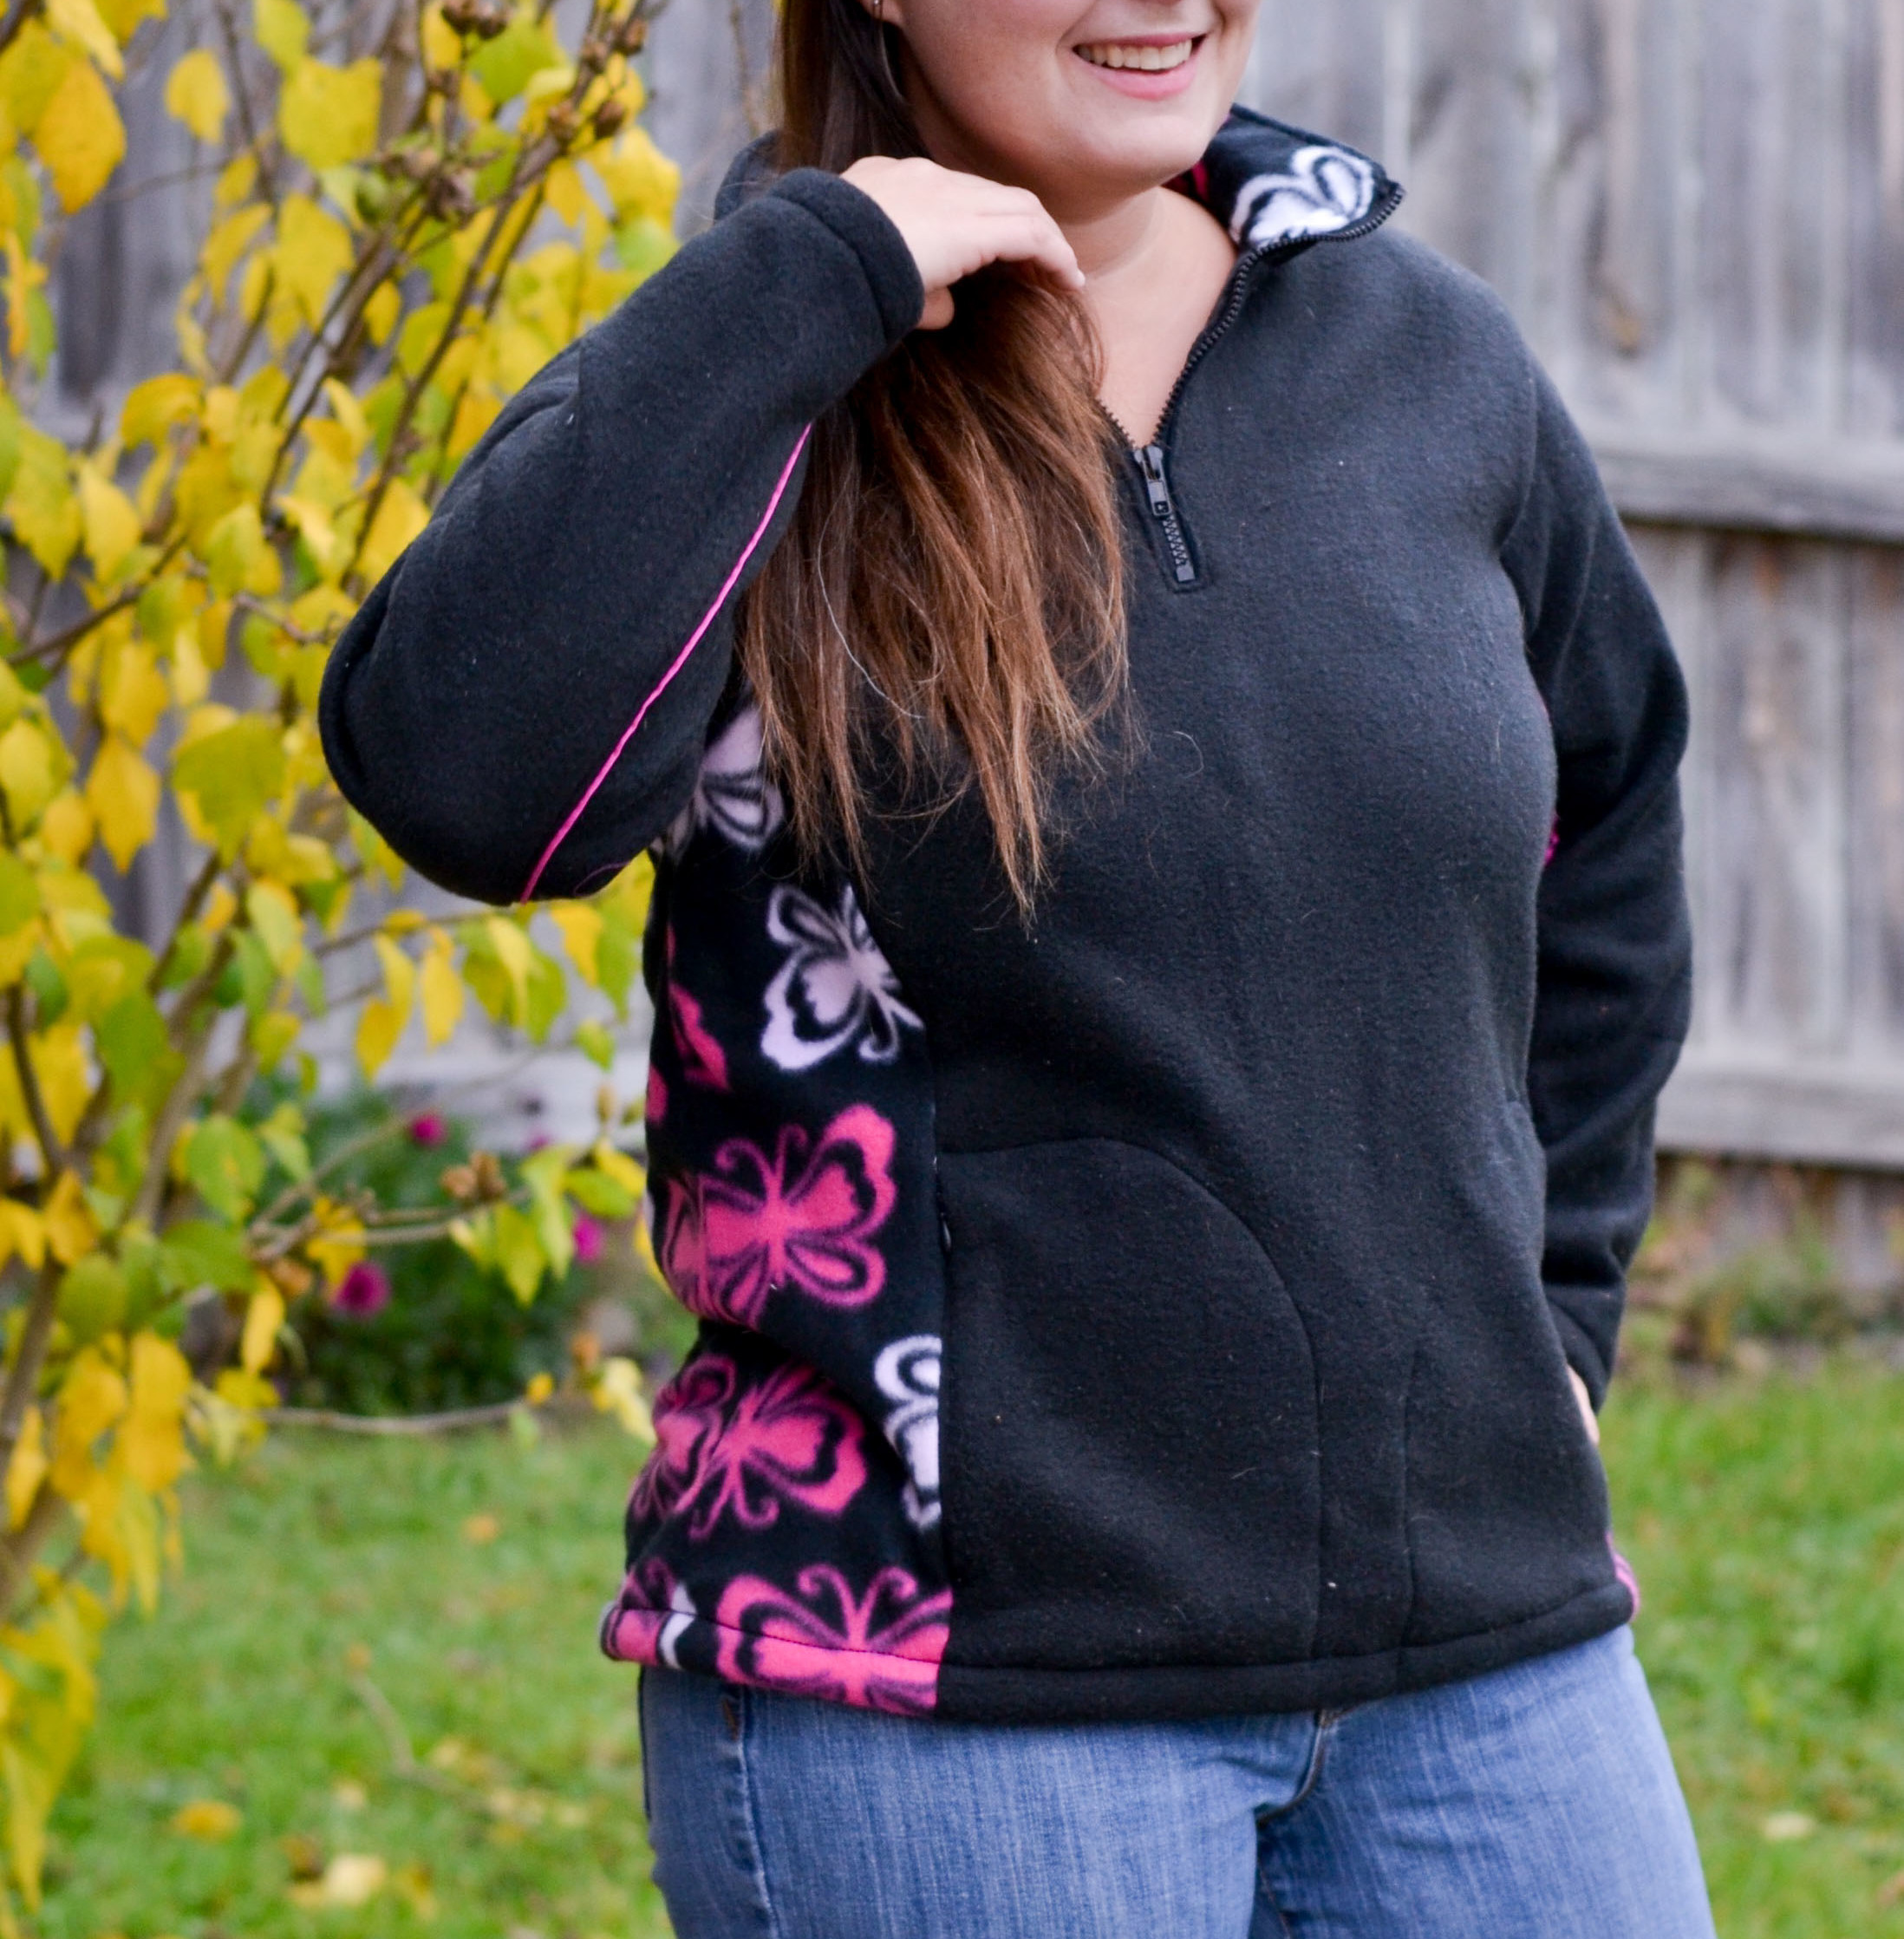 Women\'s Ascent Fleece Pullover - 5 out of 4 Patterns